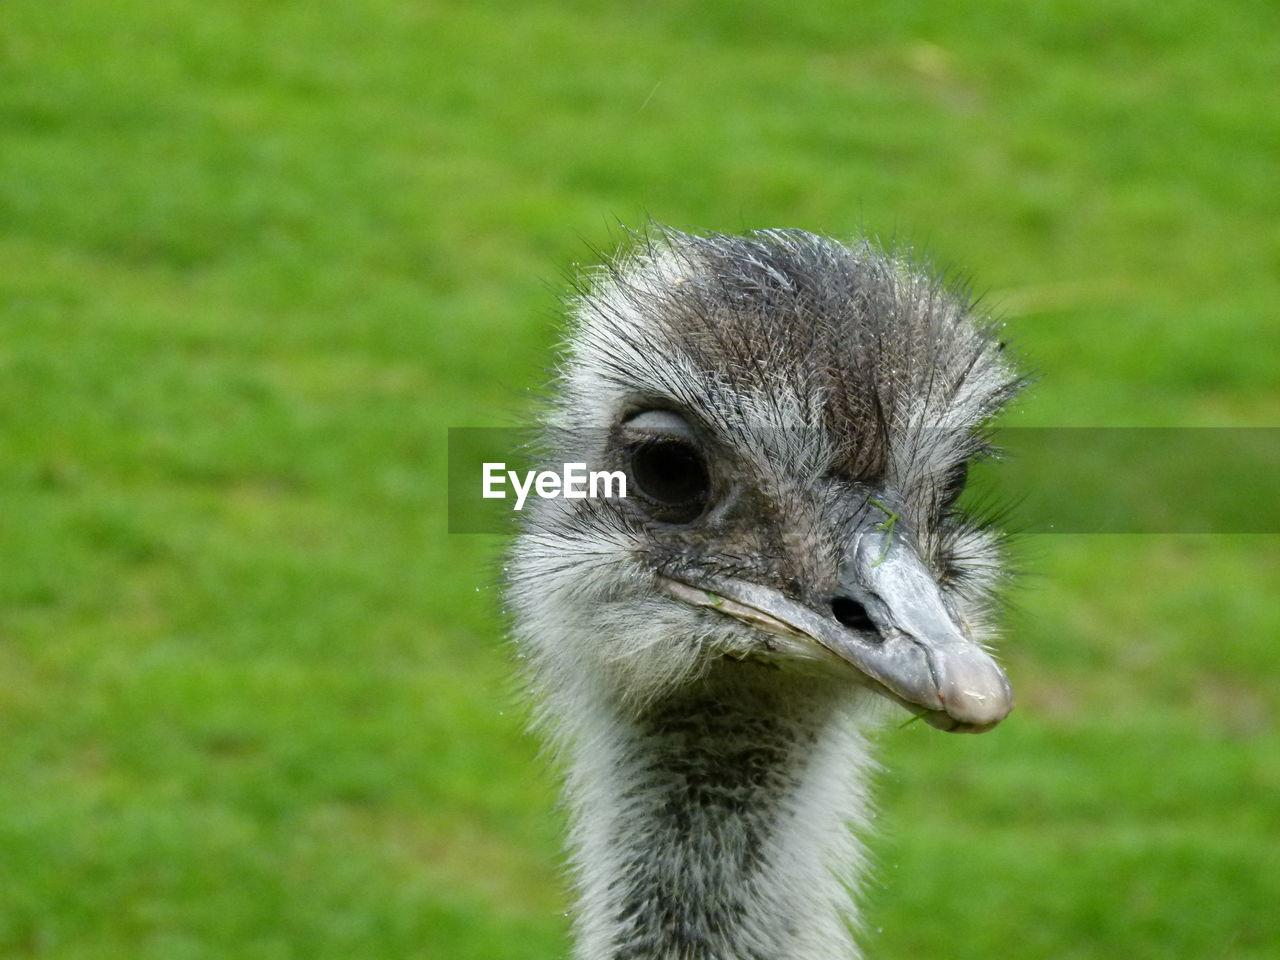 animal, animal themes, vertebrate, one animal, bird, animals in the wild, animal wildlife, ostrich, land, close-up, focus on foreground, field, nature, day, animal body part, no people, grass, beak, young animal, animal head, animal eye, gosling